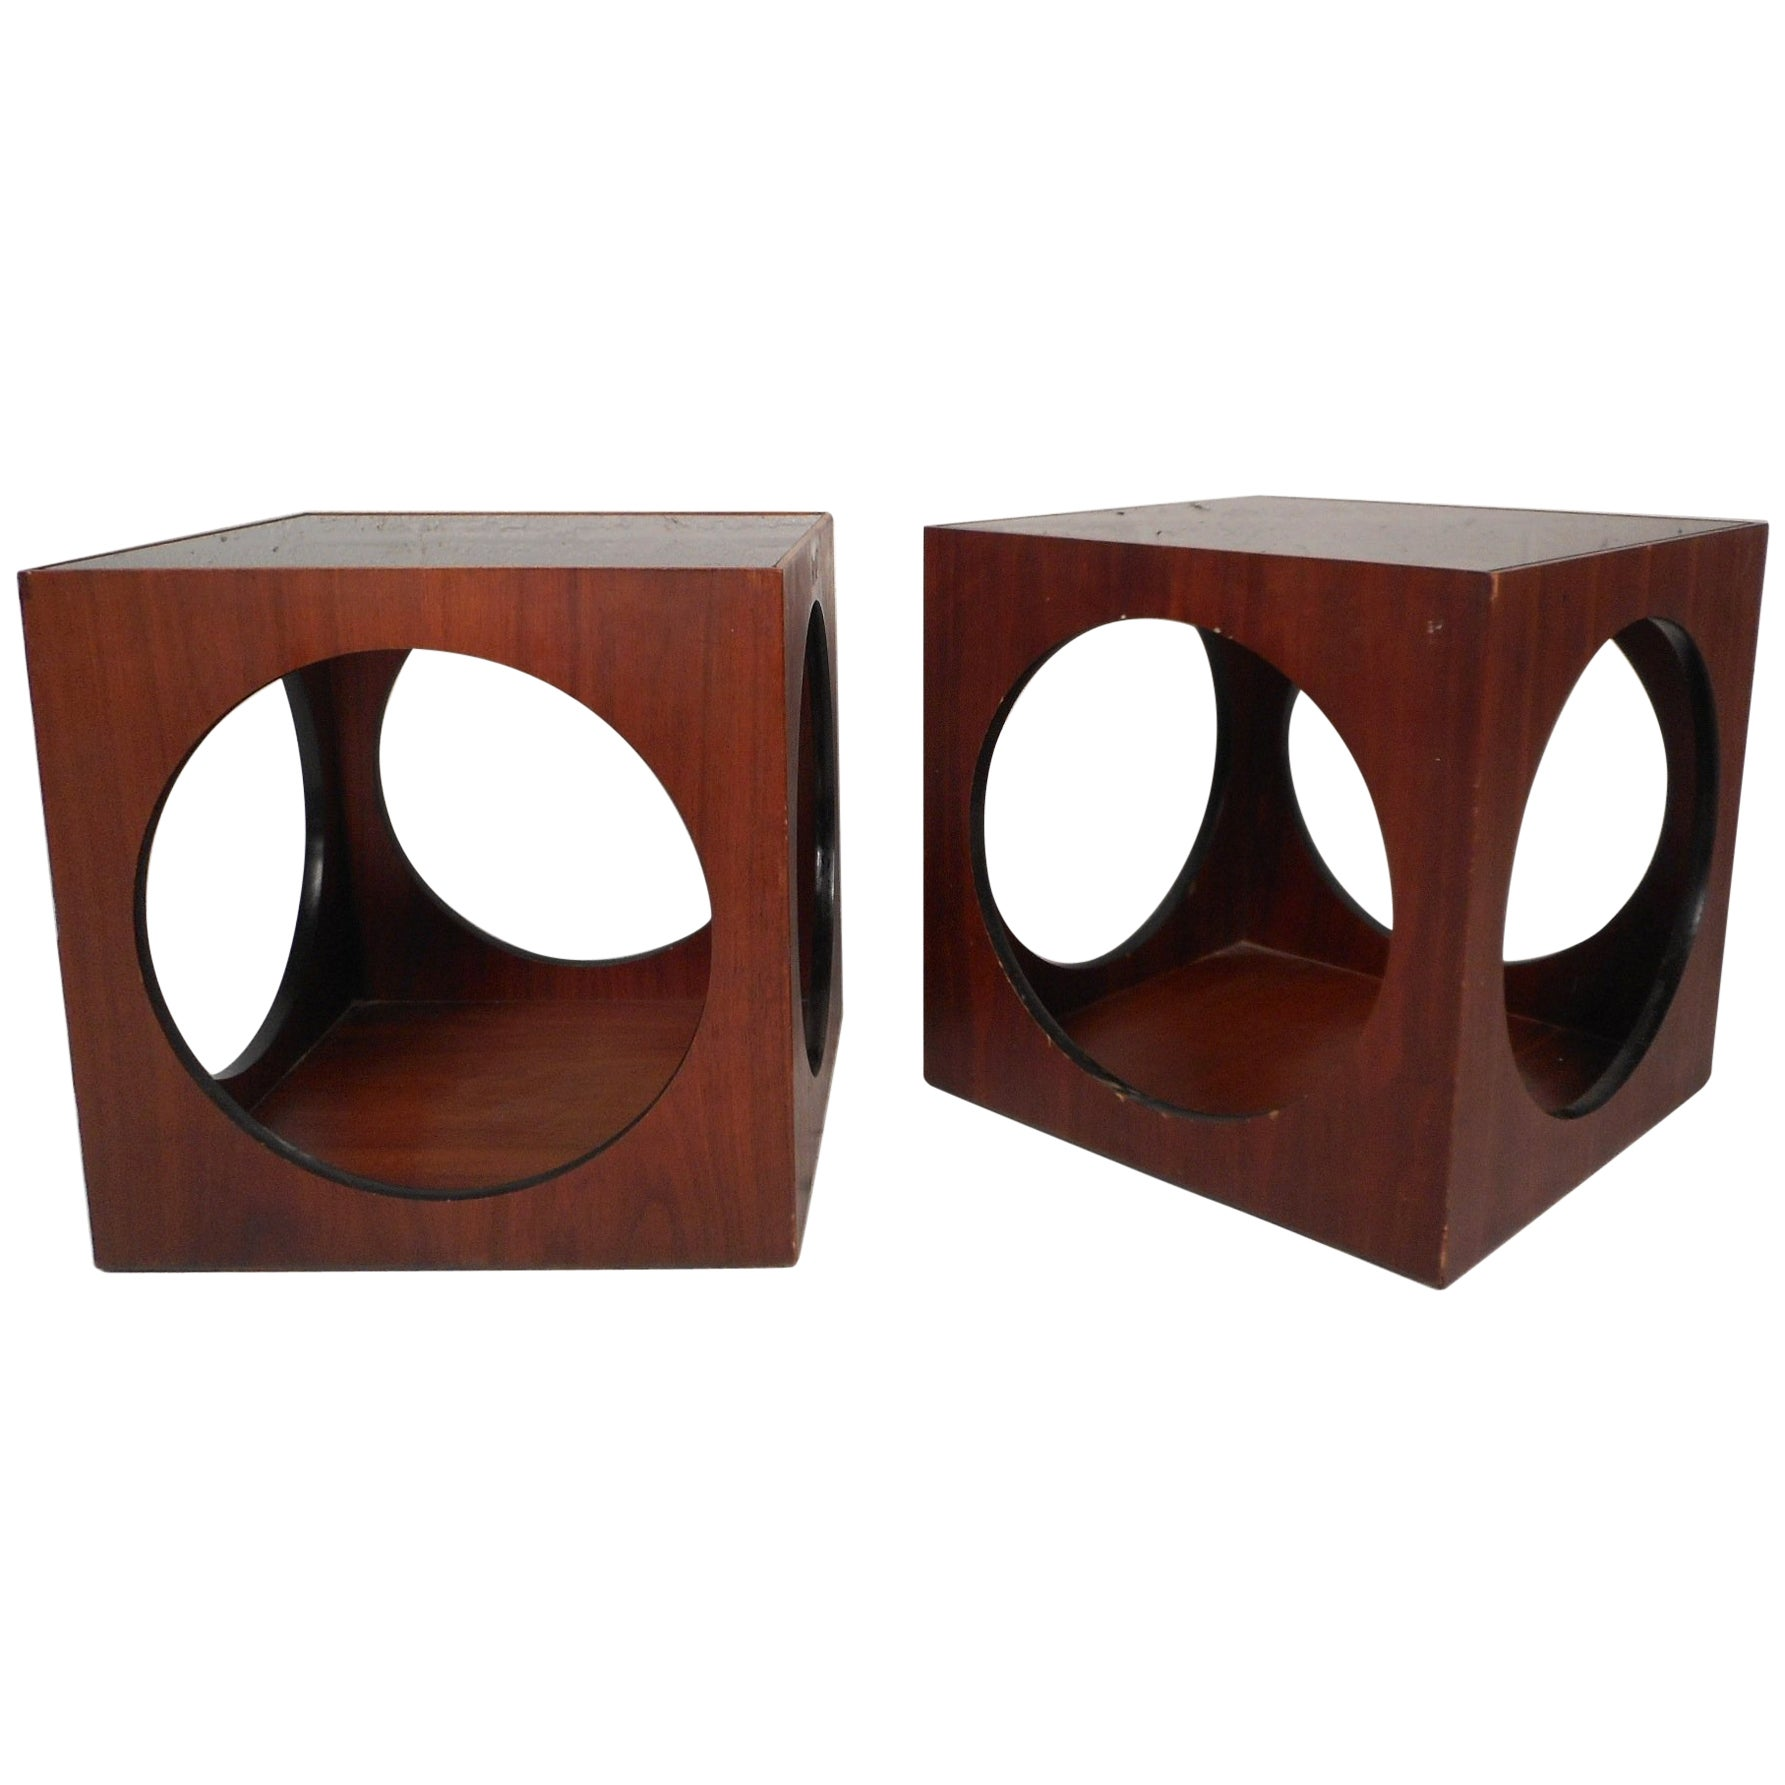 Pair of Mid-Century Modern Cube End Tables